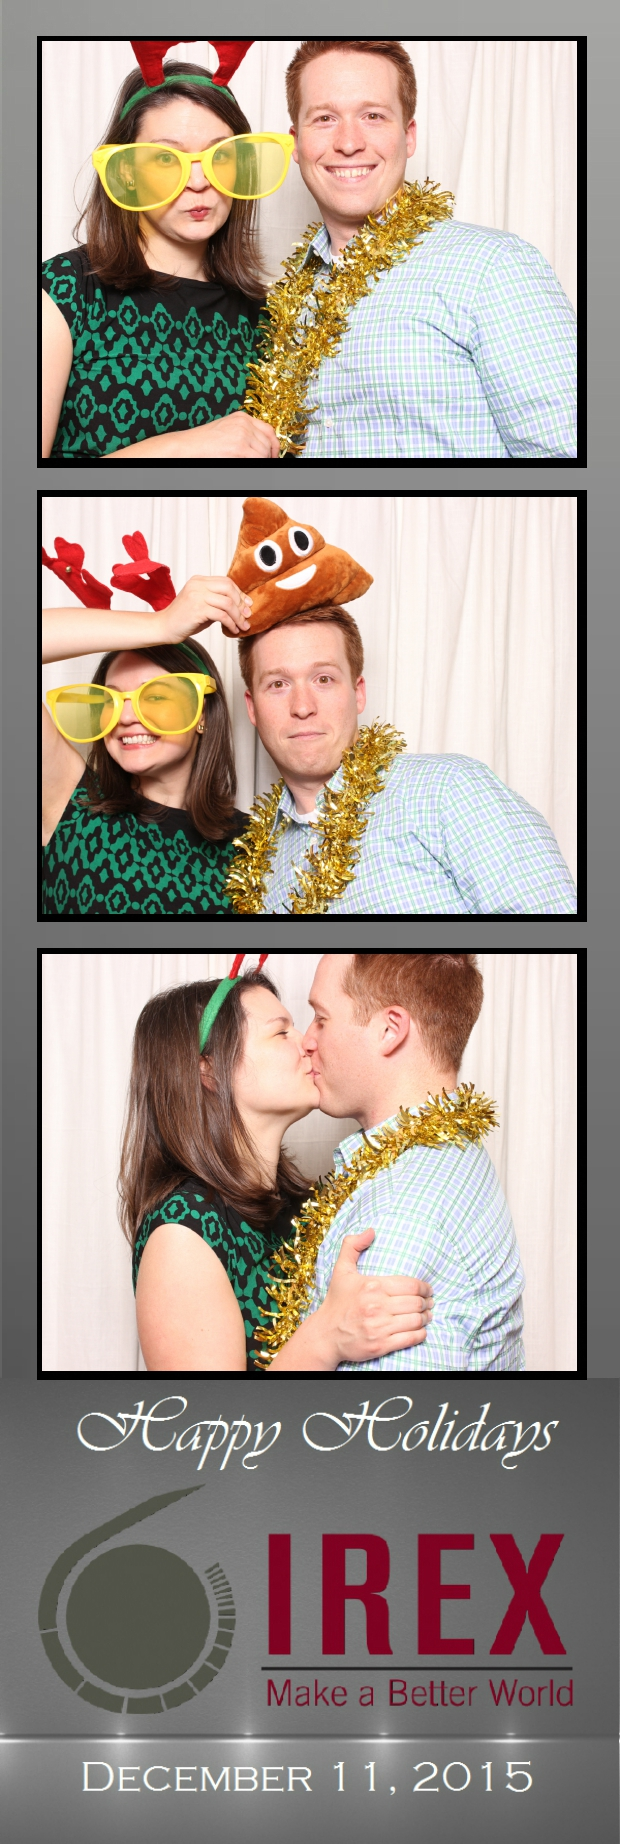 Guest House Events Photo Booth Strips IREX (71).jpg